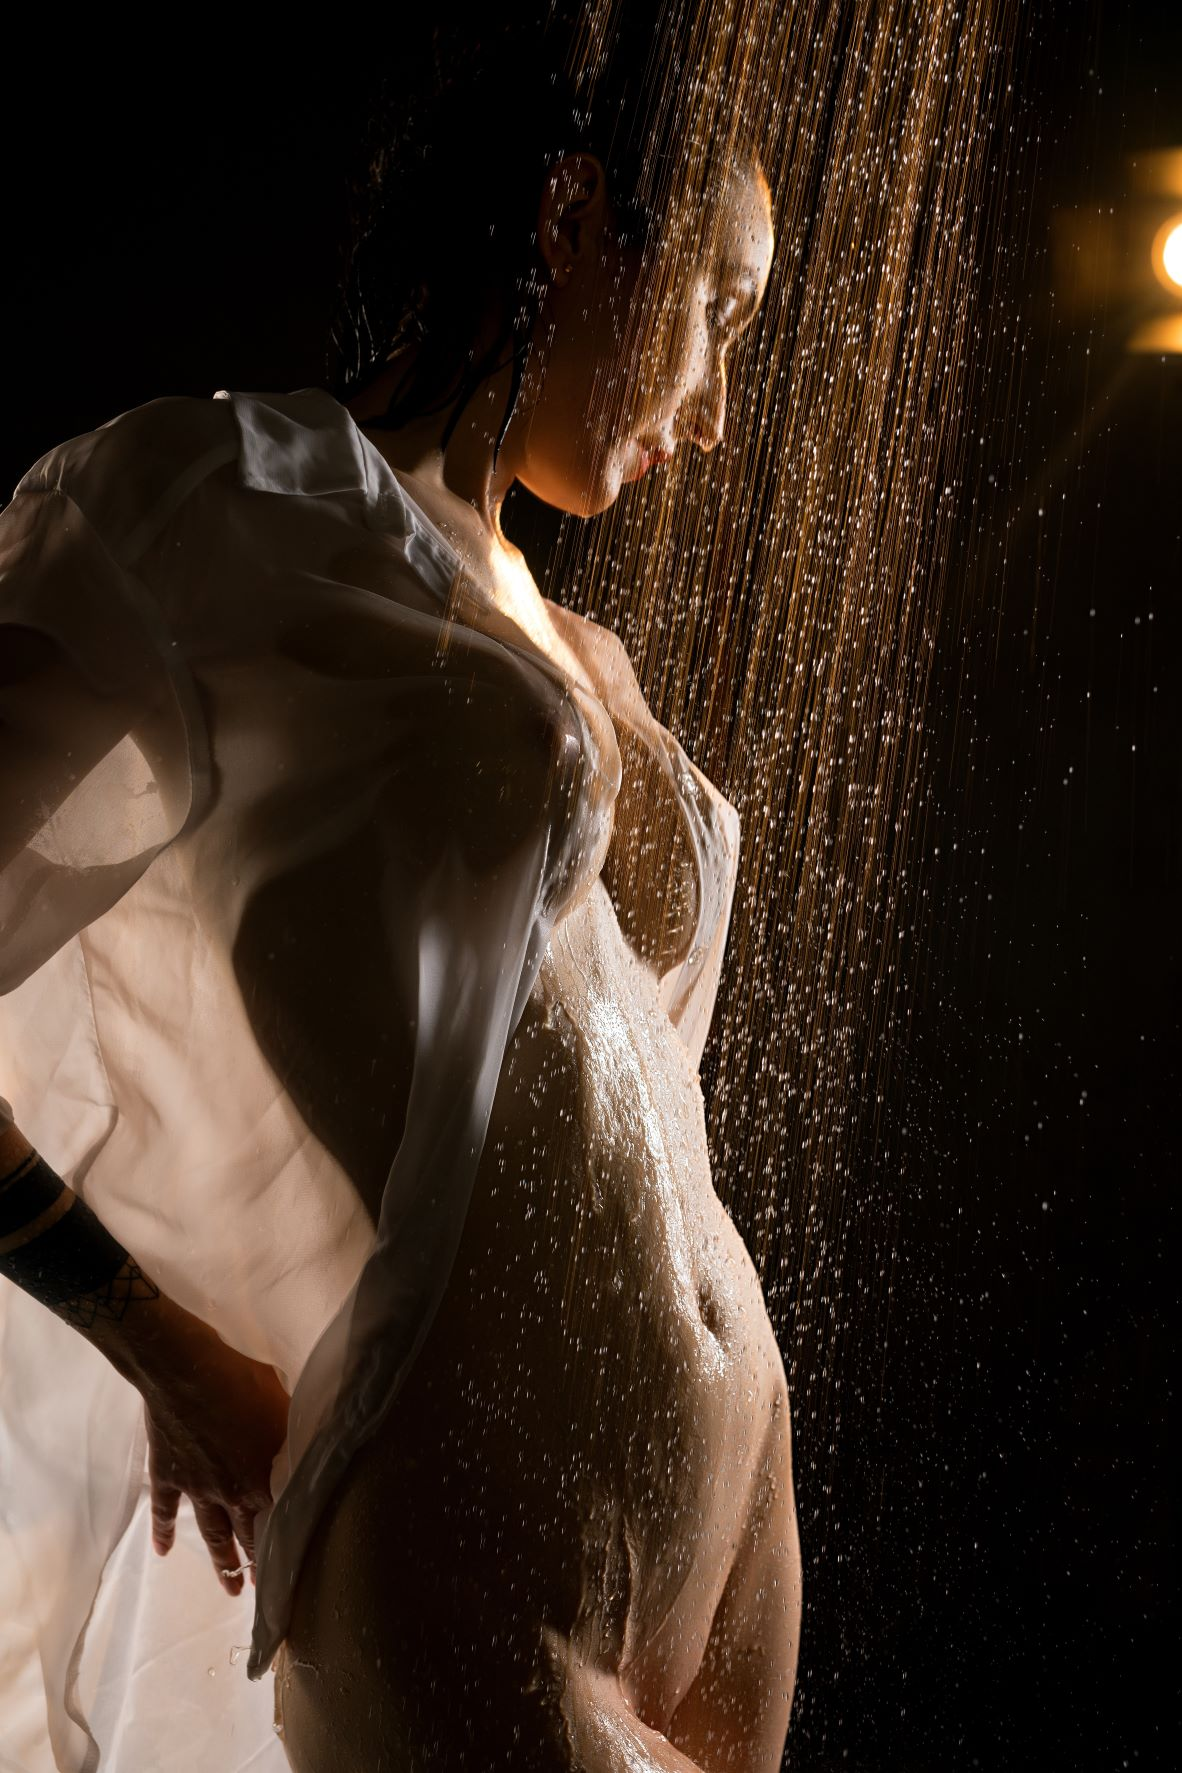 Woman in shower with wet shirt covering breasts